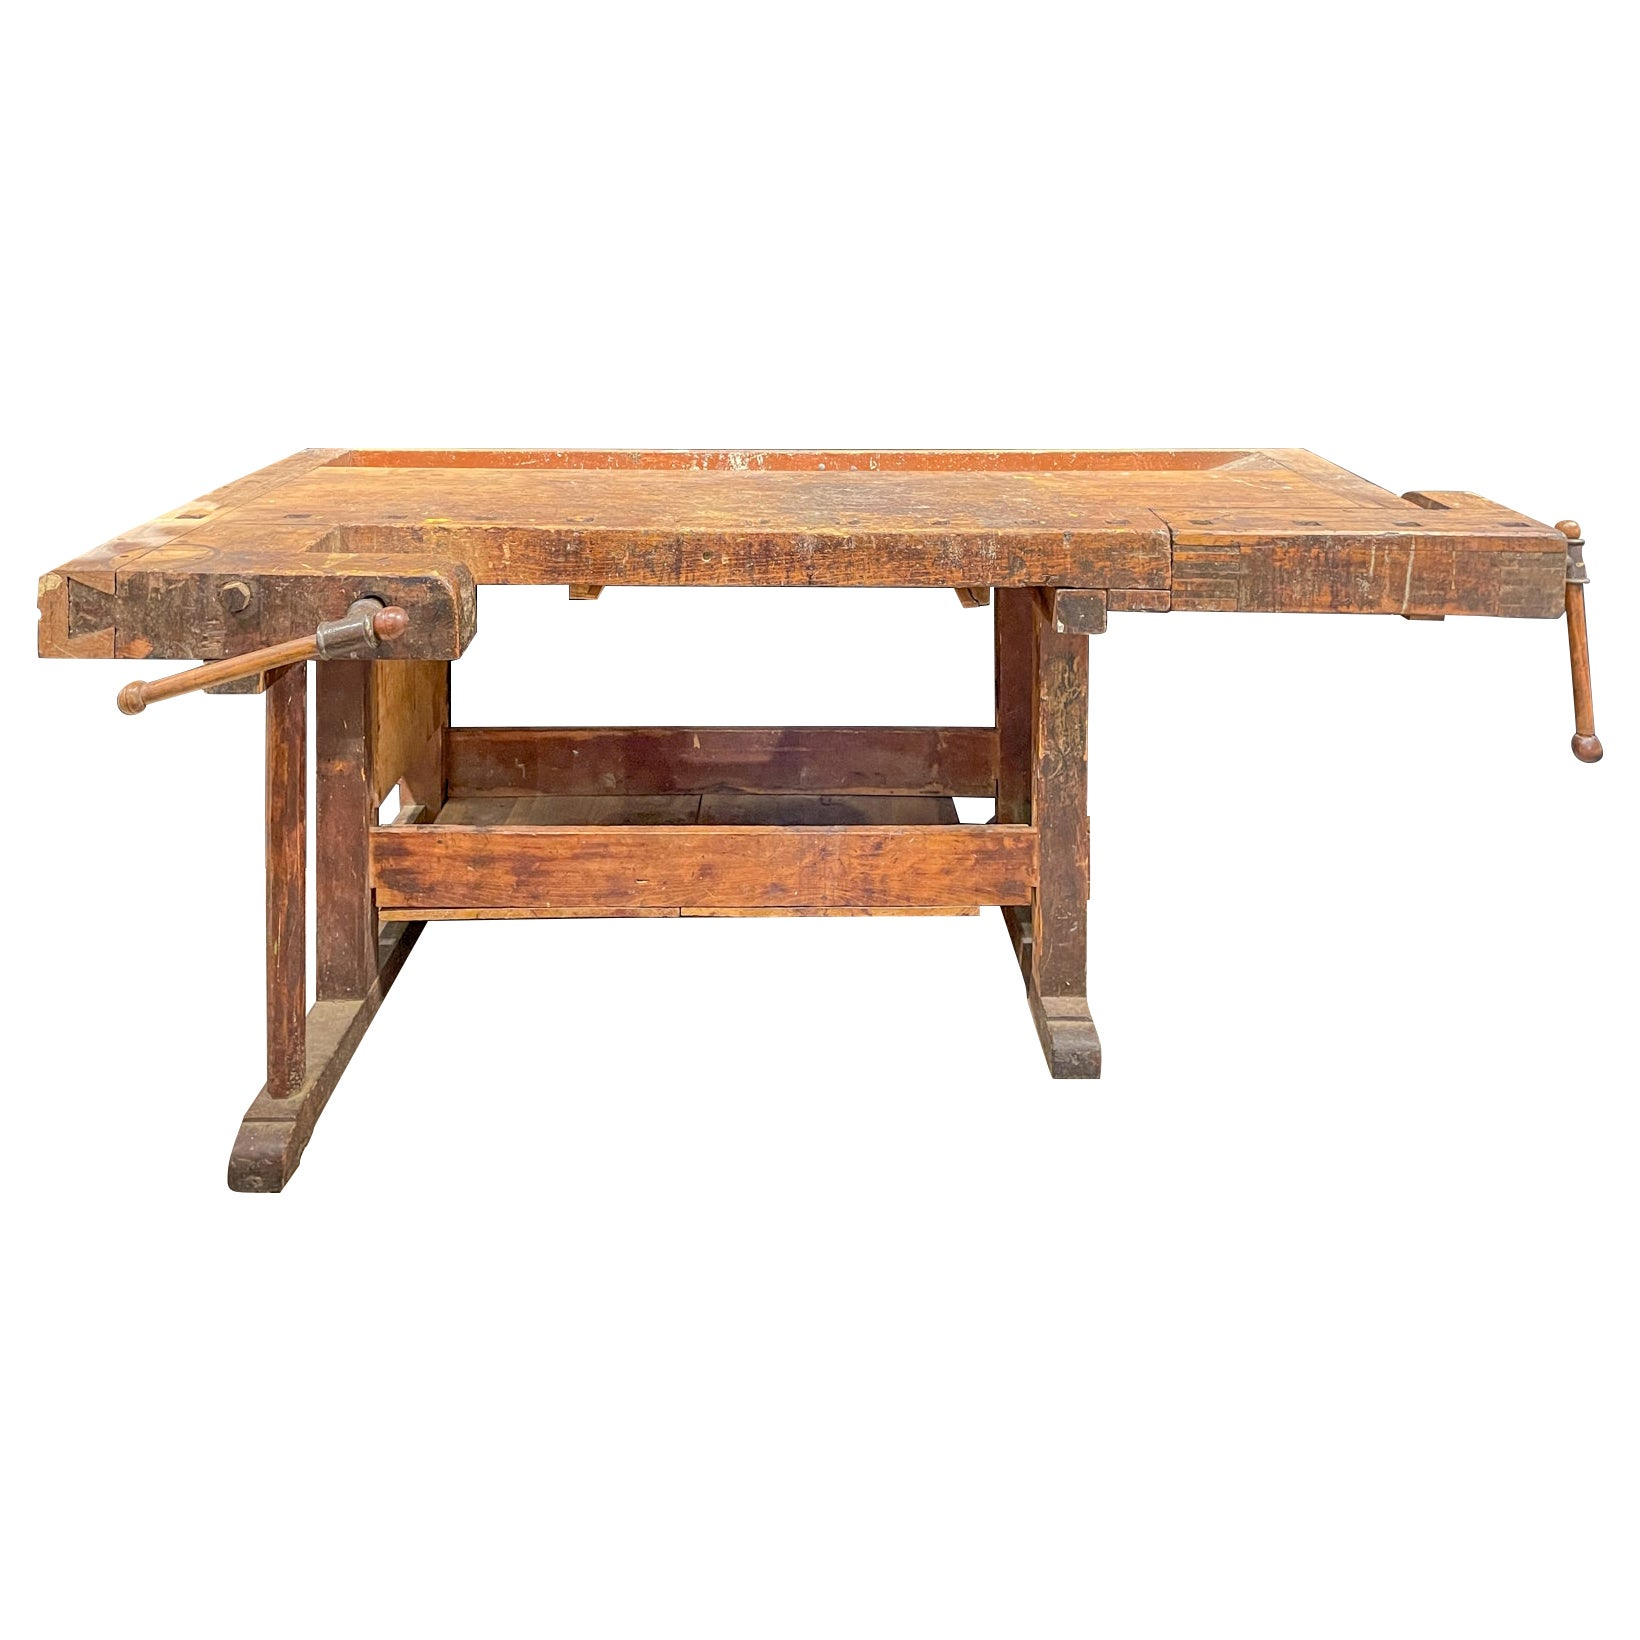 Large Antique French Work Table with Two Vices & Dog Holes on Trestle Base